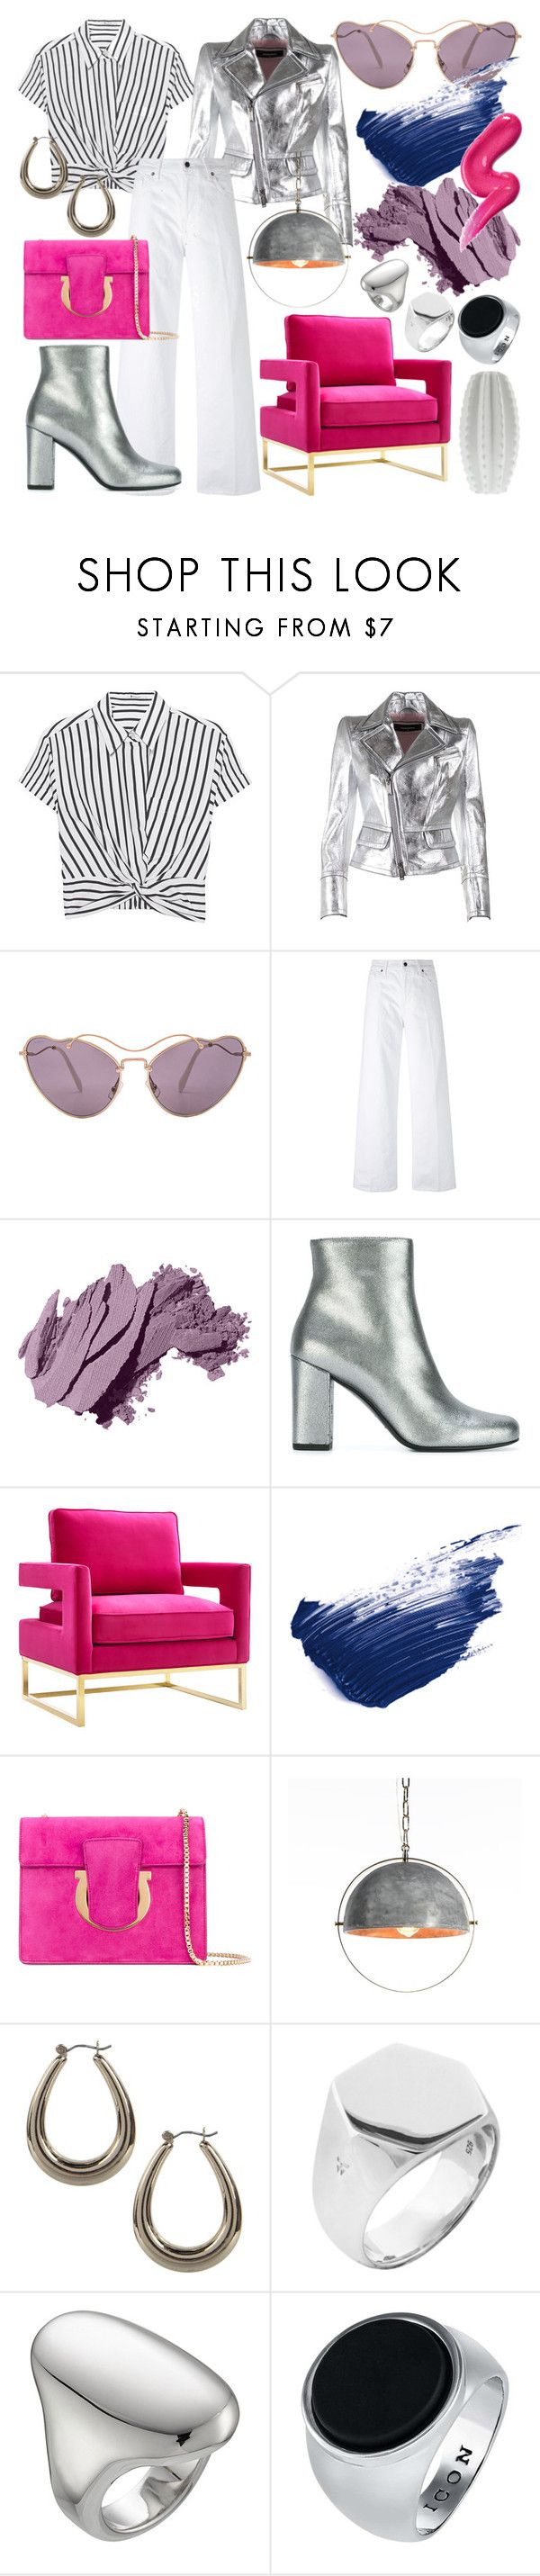 """Fuchsia Fusion"" by heybigtrender on Polyvore featuring T By Alexander Wang, Dsquared2, Miu Miu, Vince, Bobbi Brown Cosmetics, Yves Saint Laurent, By Terry, Salvatore Ferragamo, West Elm and Boohoo"